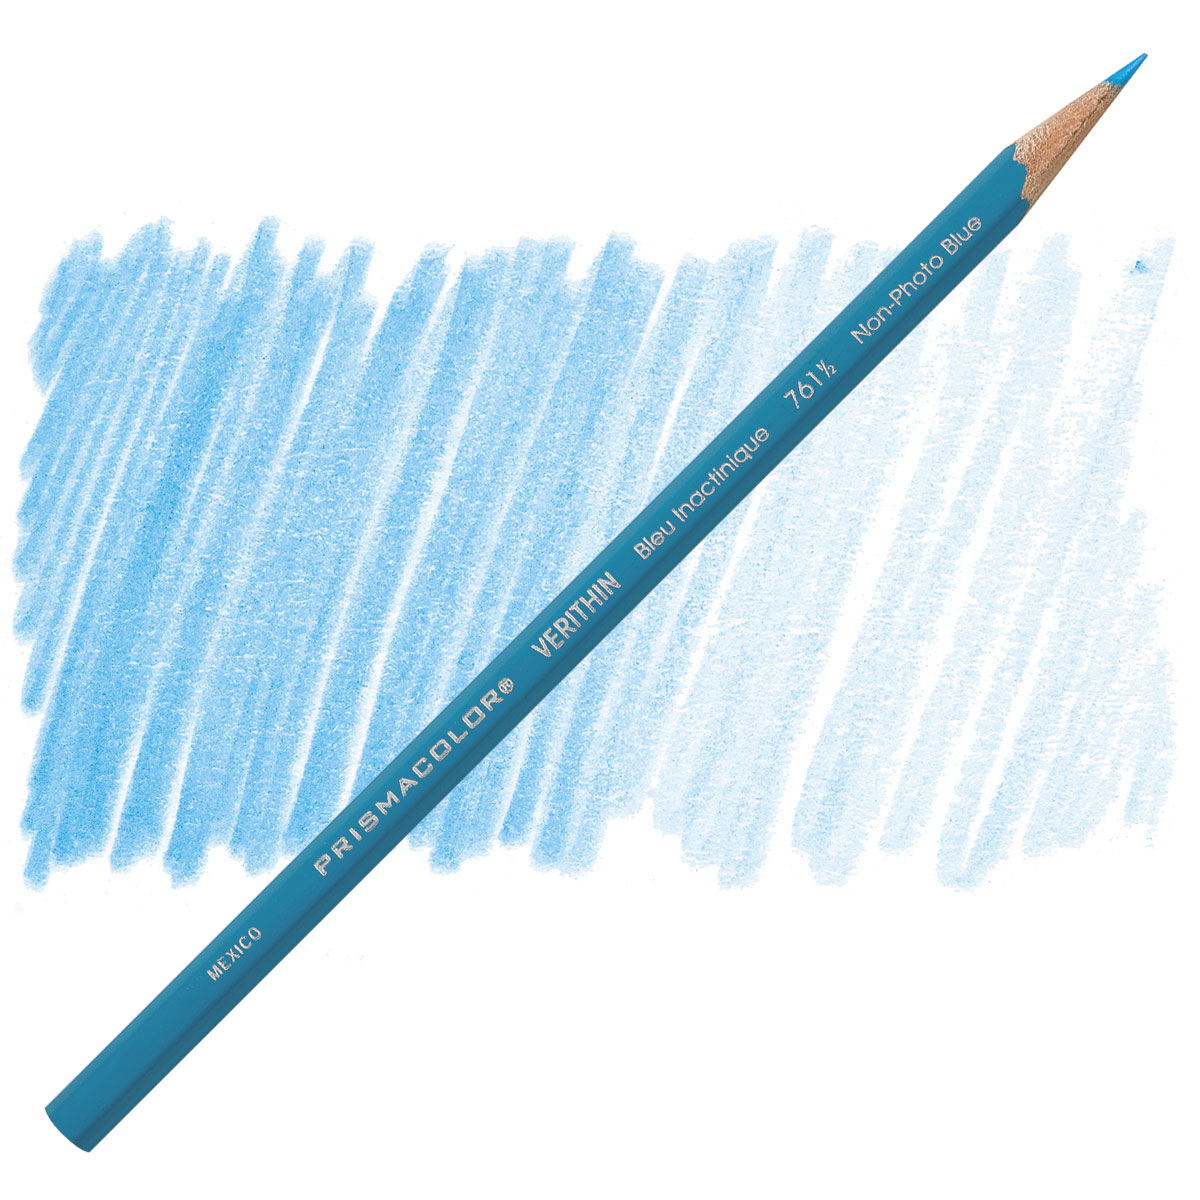 20509 5531 prismacolor verithin pencils blick art materials color swatches created using heavy to light application and were applied on 100 lb 163 gsm drawing paper material nvjuhfo Choice Image